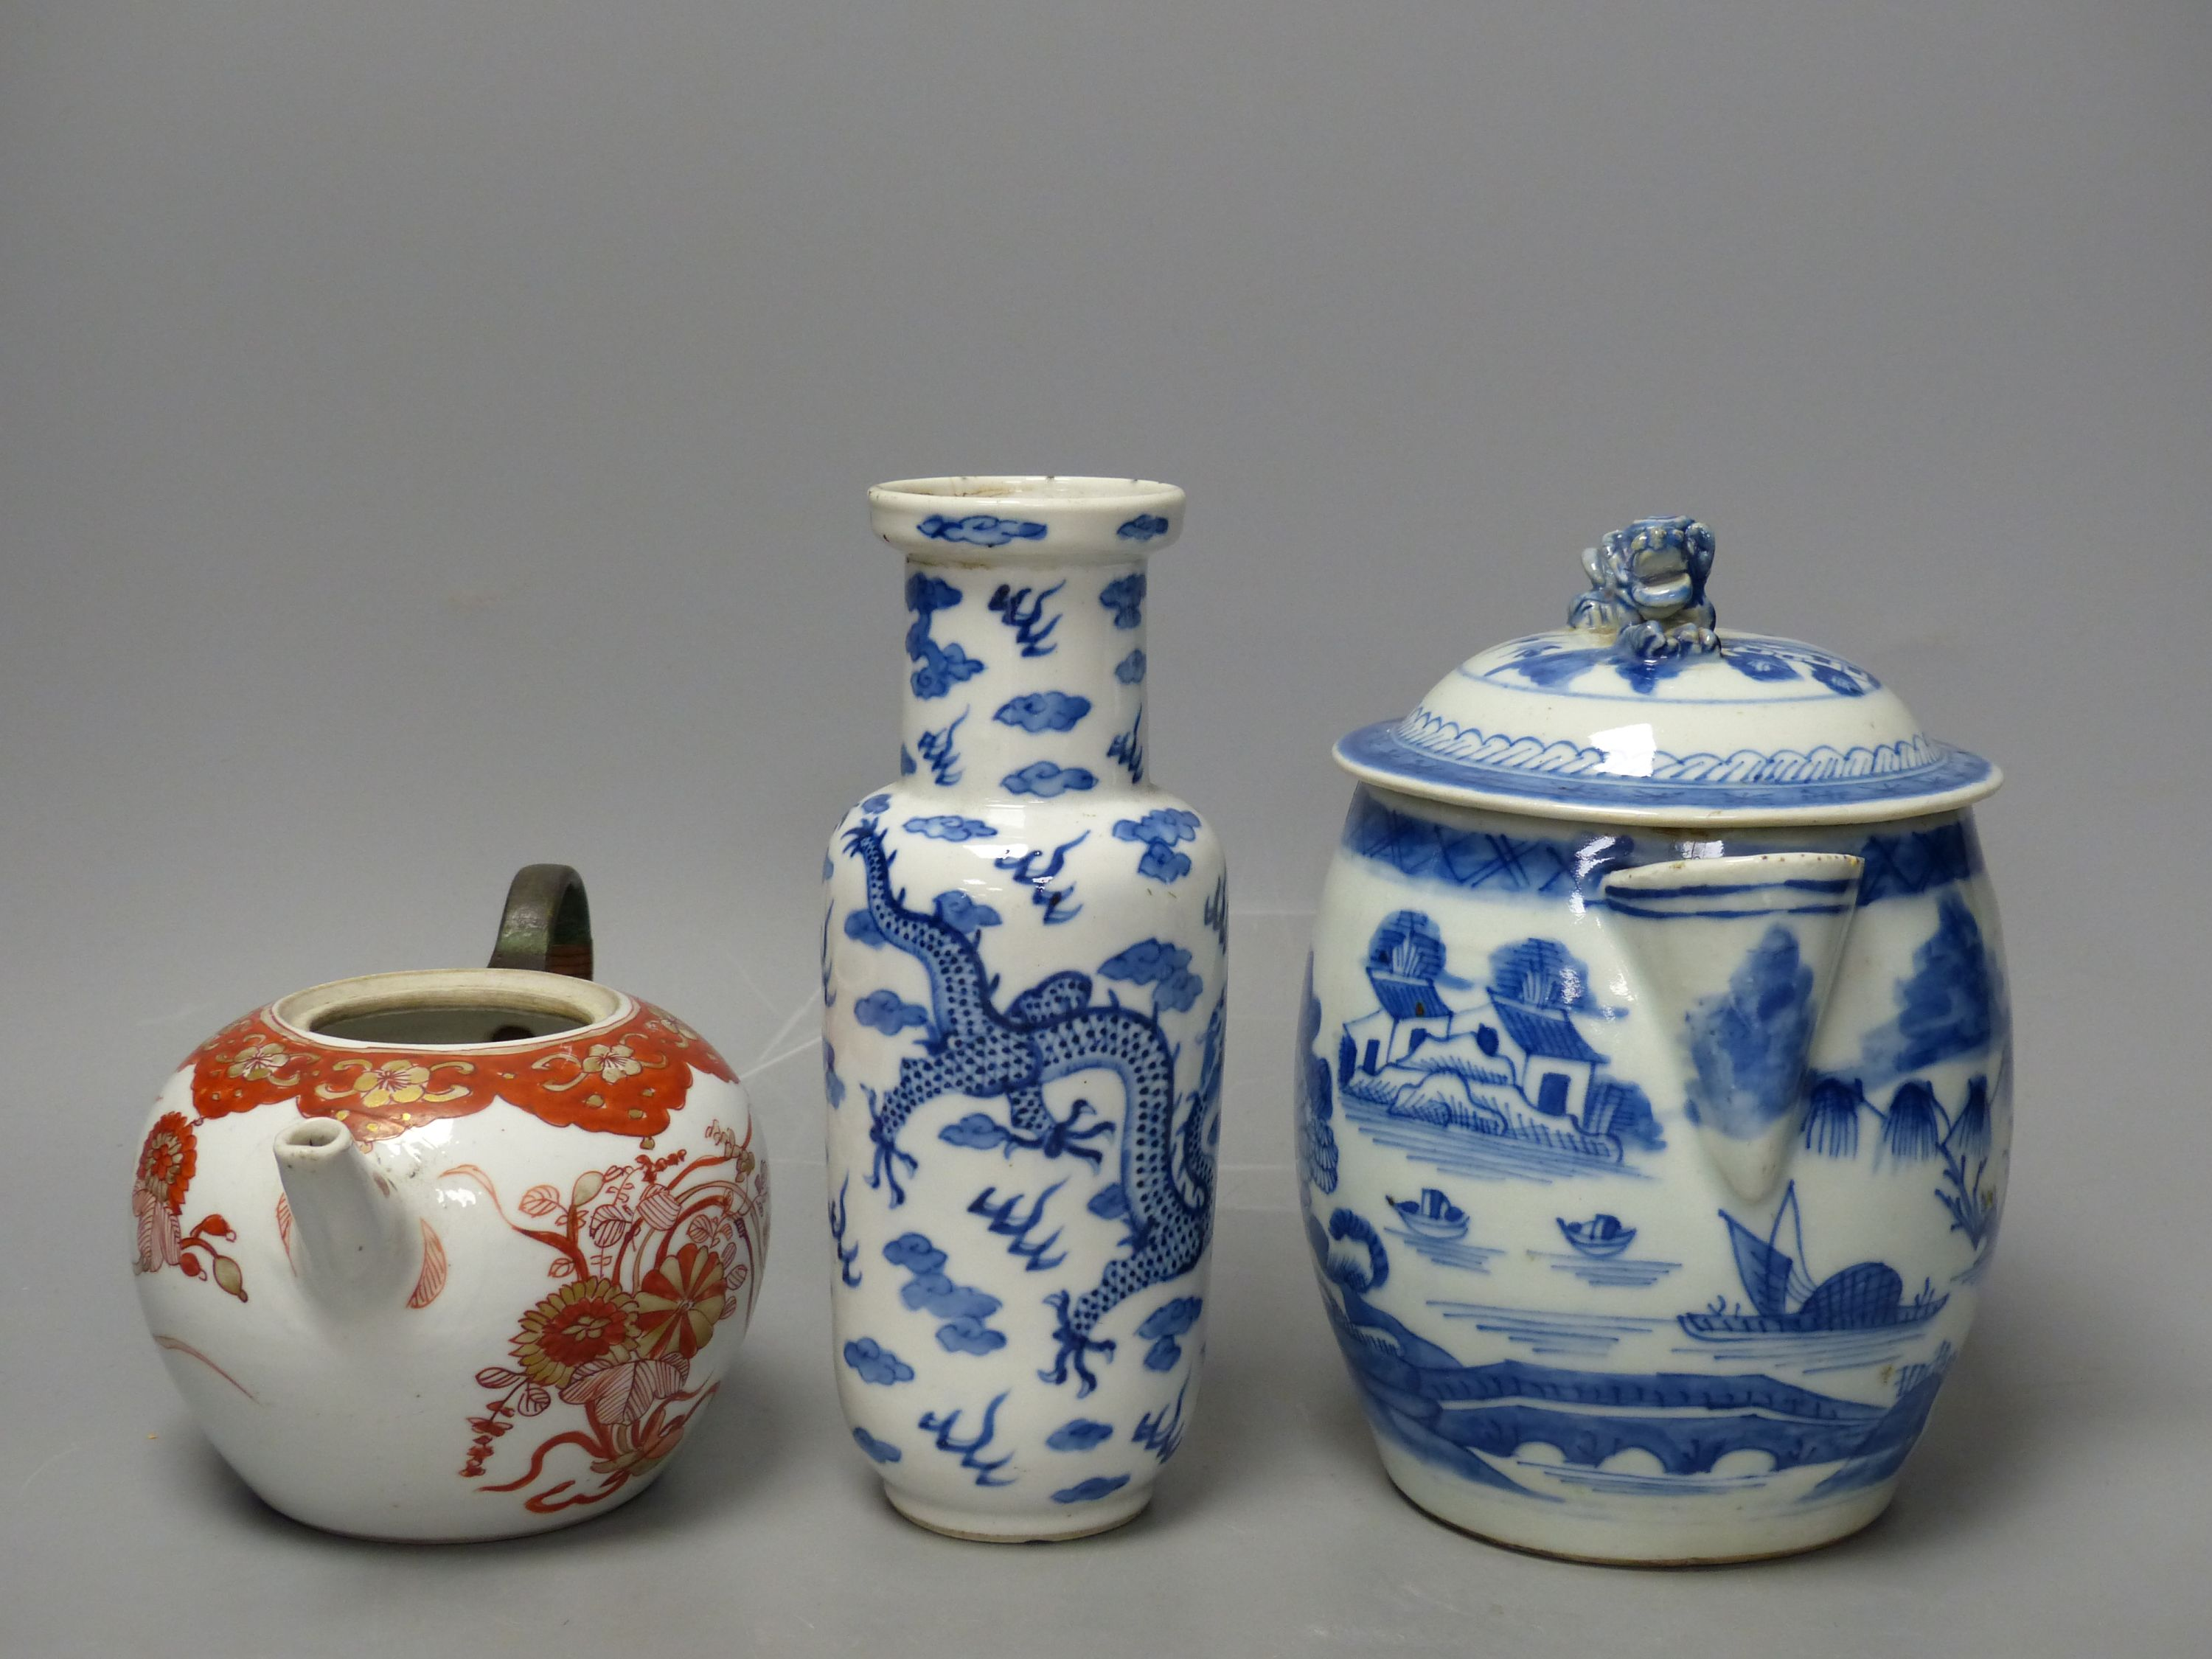 A 19th century Chinese blue and white covered jug, an early 20th century blue and white vase and a - Image 2 of 6